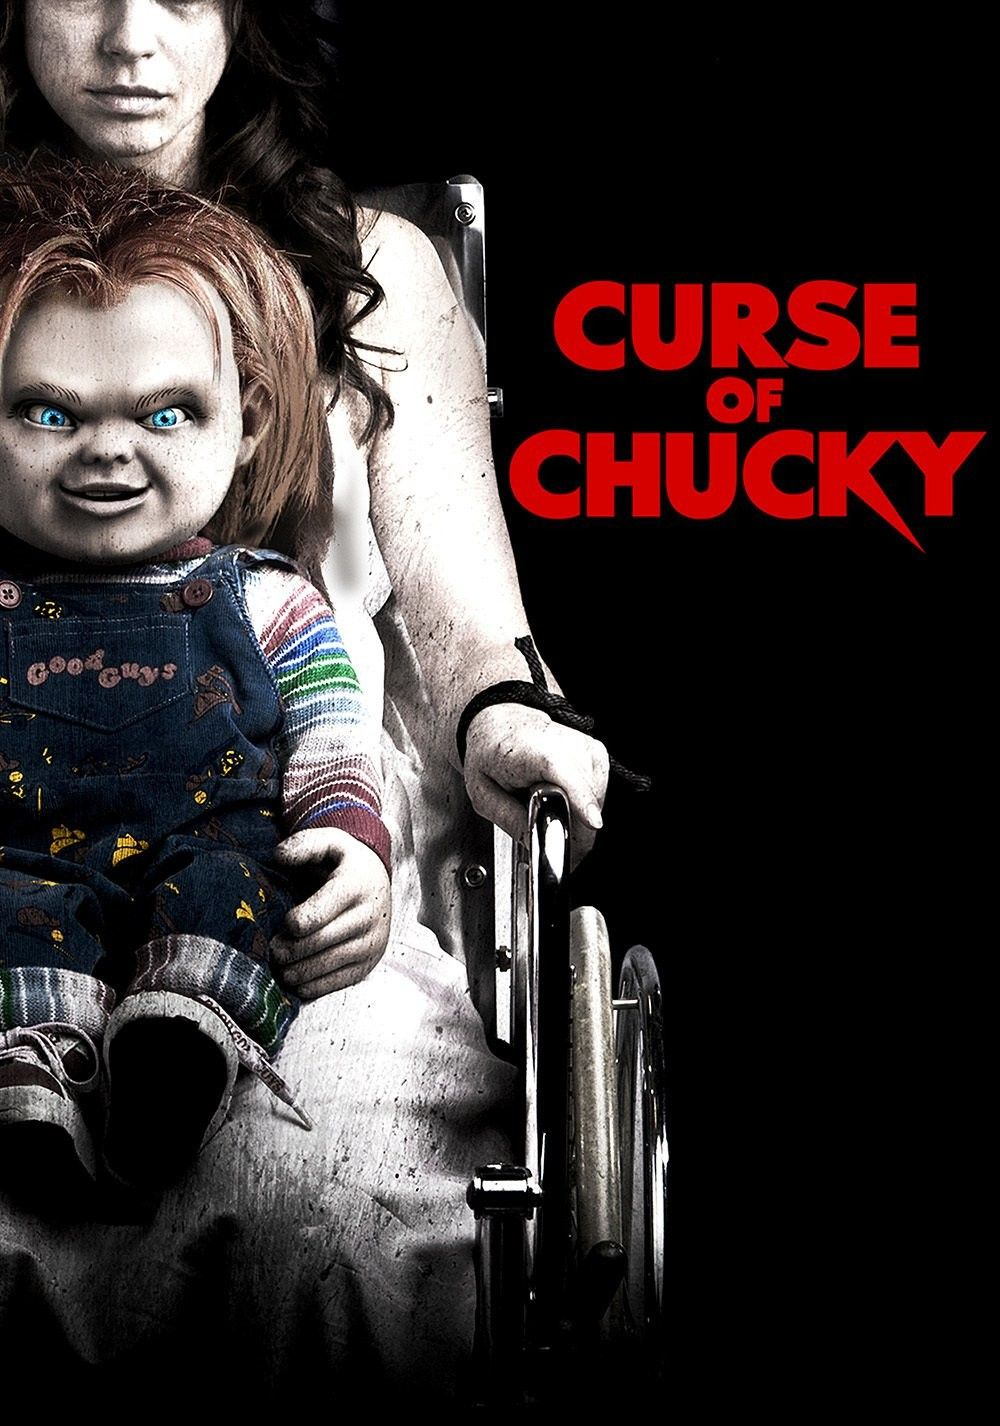 horror movie chucky | Watch Curse of Chucky (2013) Free Online